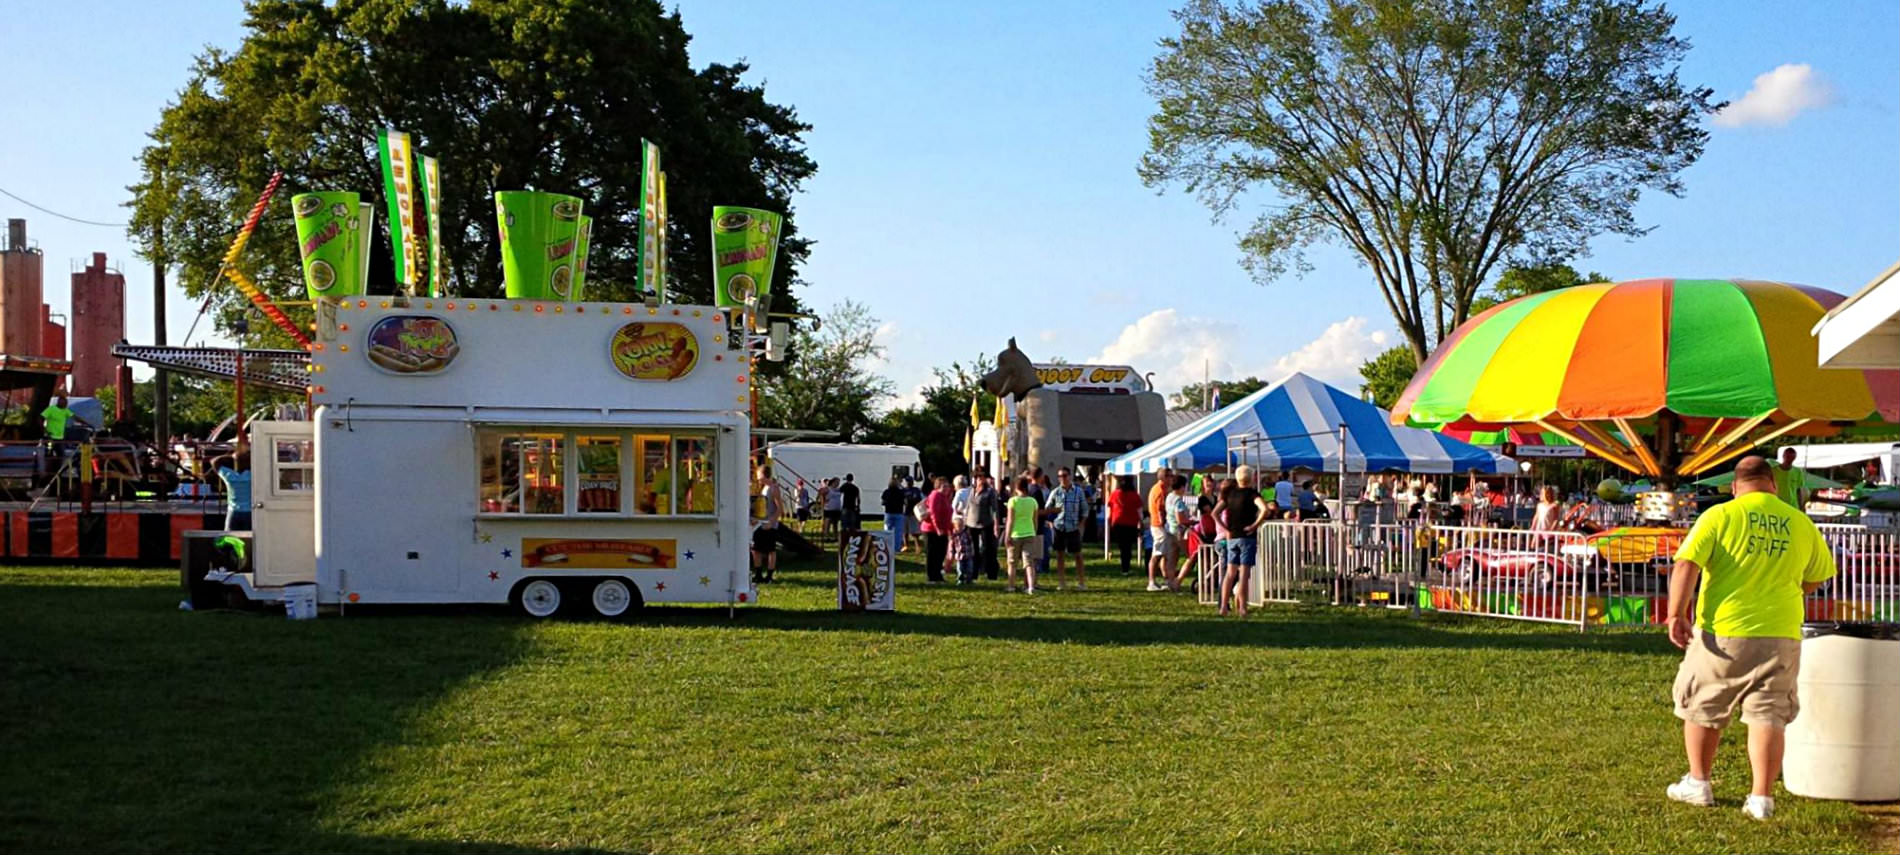 Concession Stand Trailers on green grass at Carnival with spectators, covered rides with trees in background.